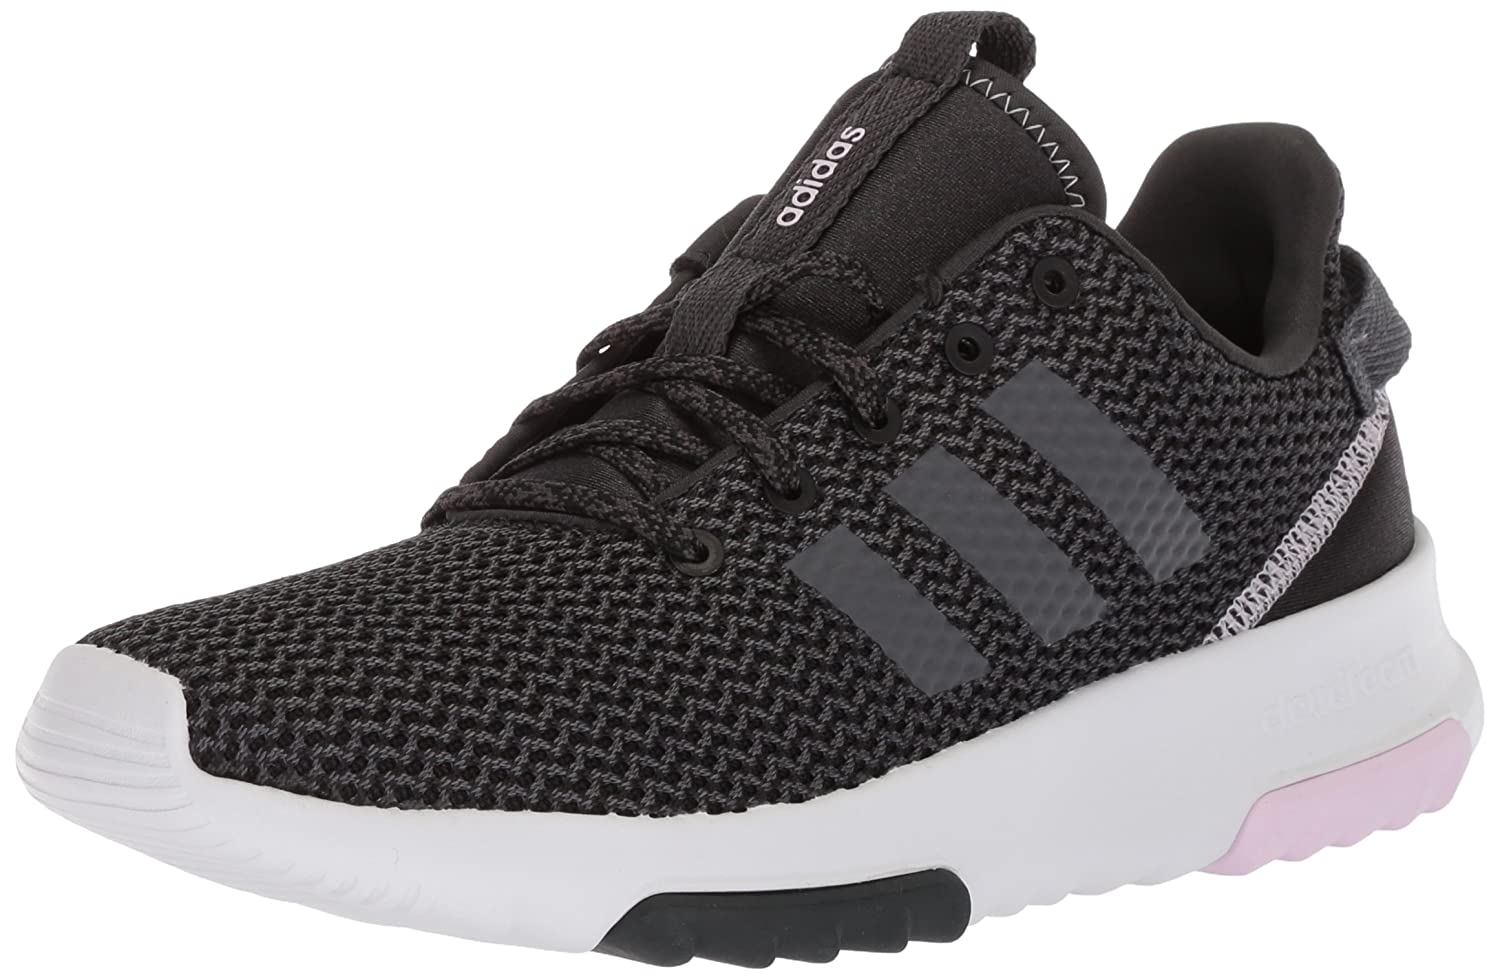 adidas Originals Women's Cf Racer Tr W Running Shoe B0711R28JV 6.5 B(M) US|Carbon/Grey Five/Aero Pink